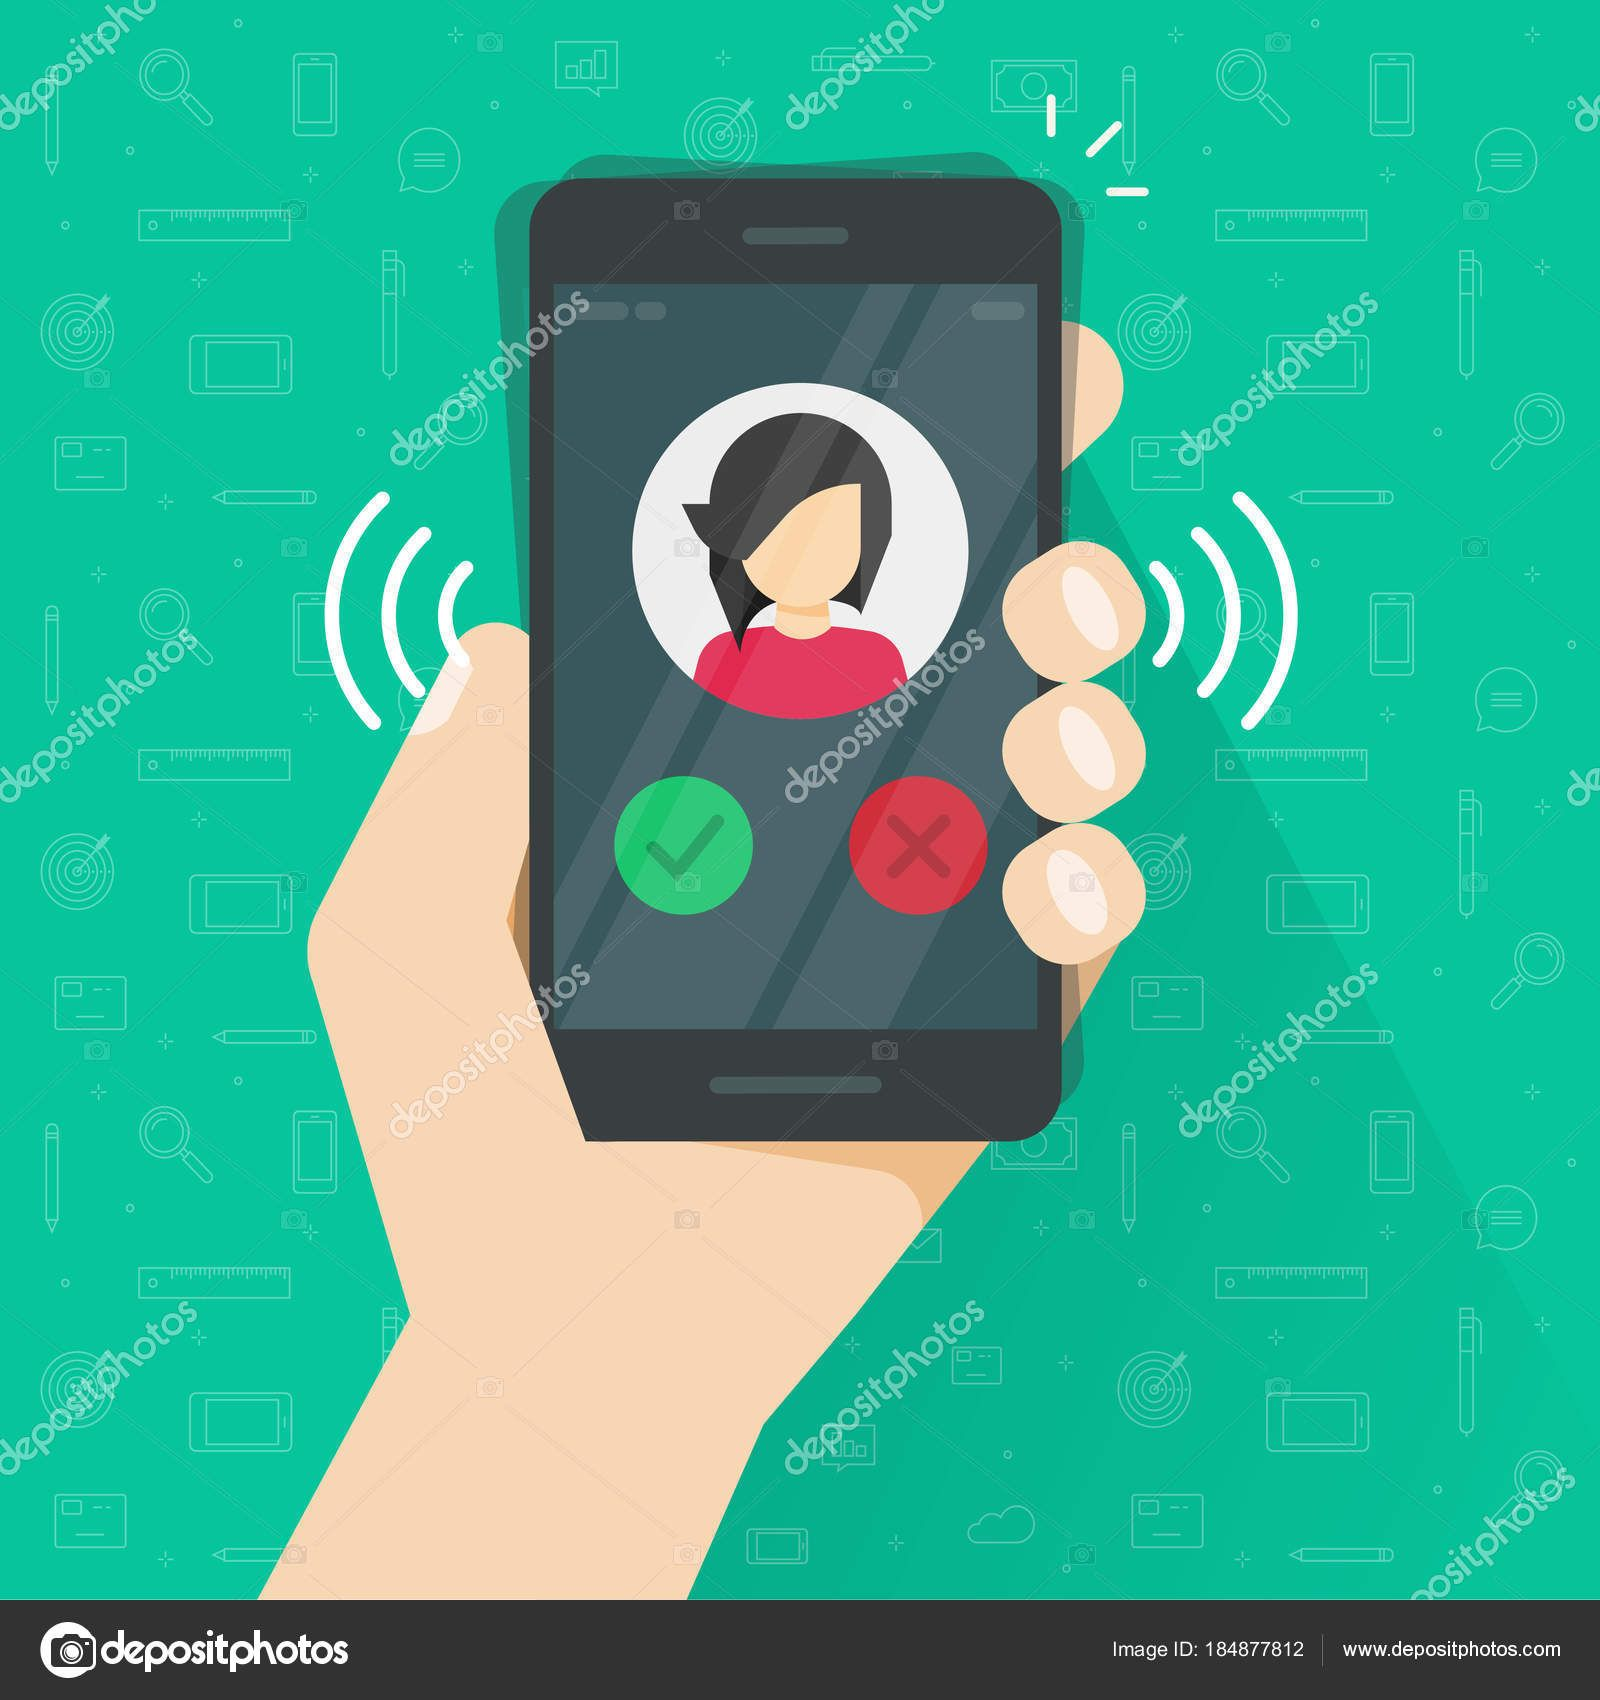 Download Smartphone or mobile phone ringing or calling